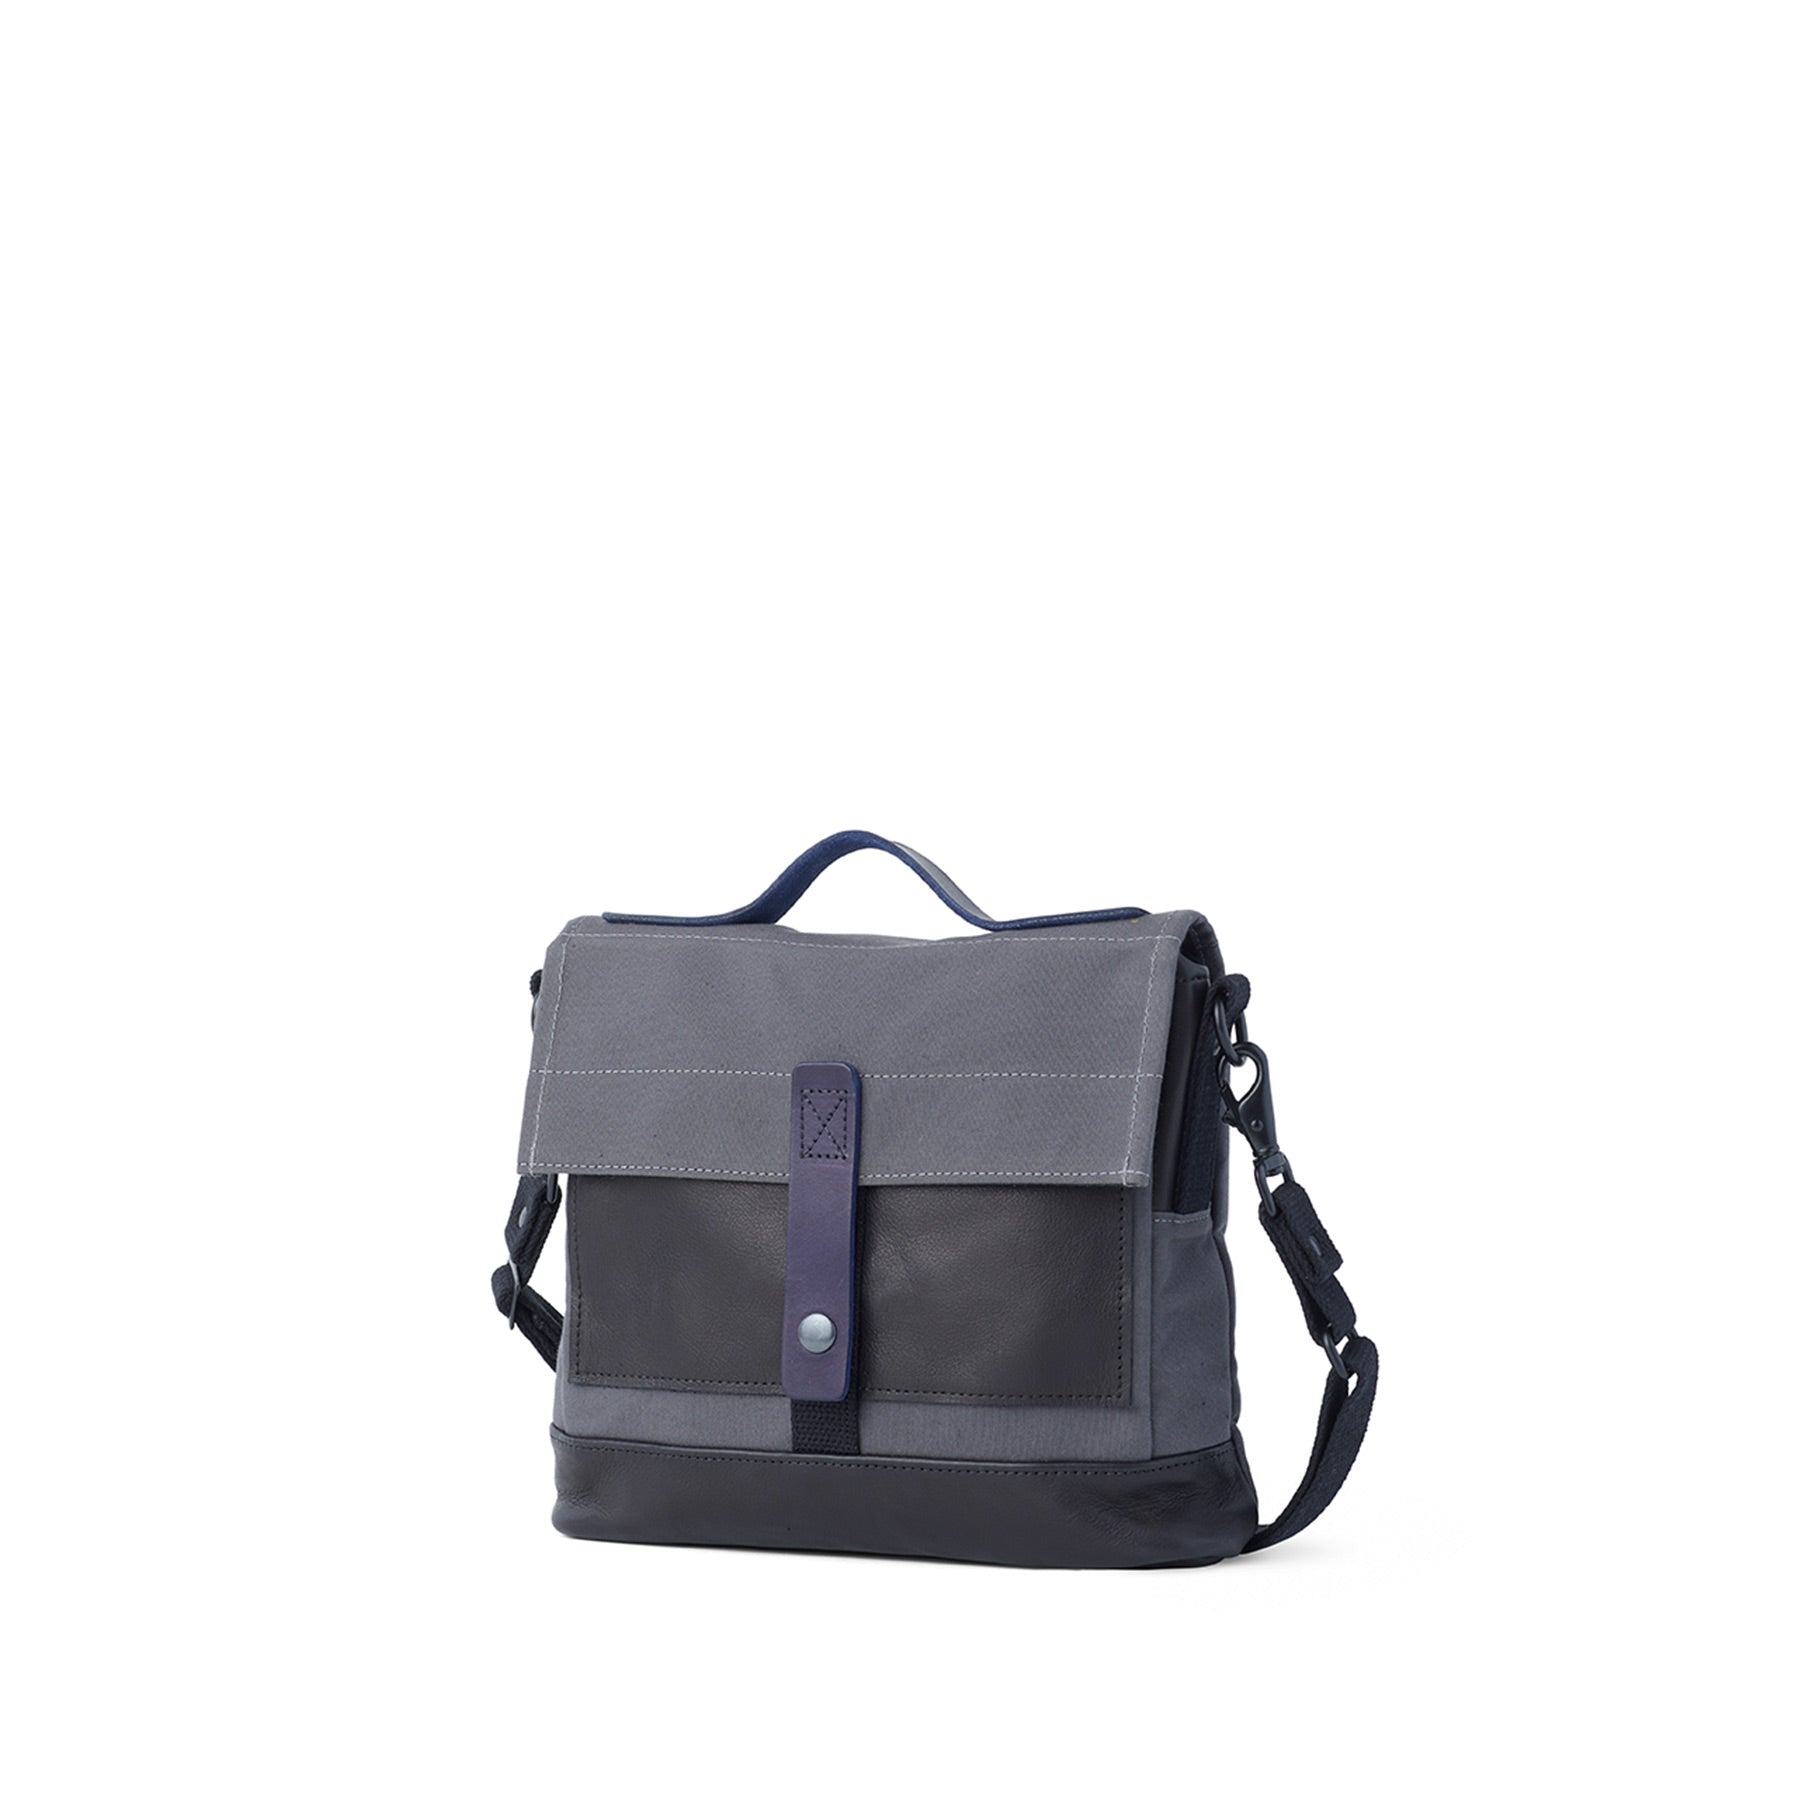 Heath + Stein Satchel in Gunmetal Zoom Image 1